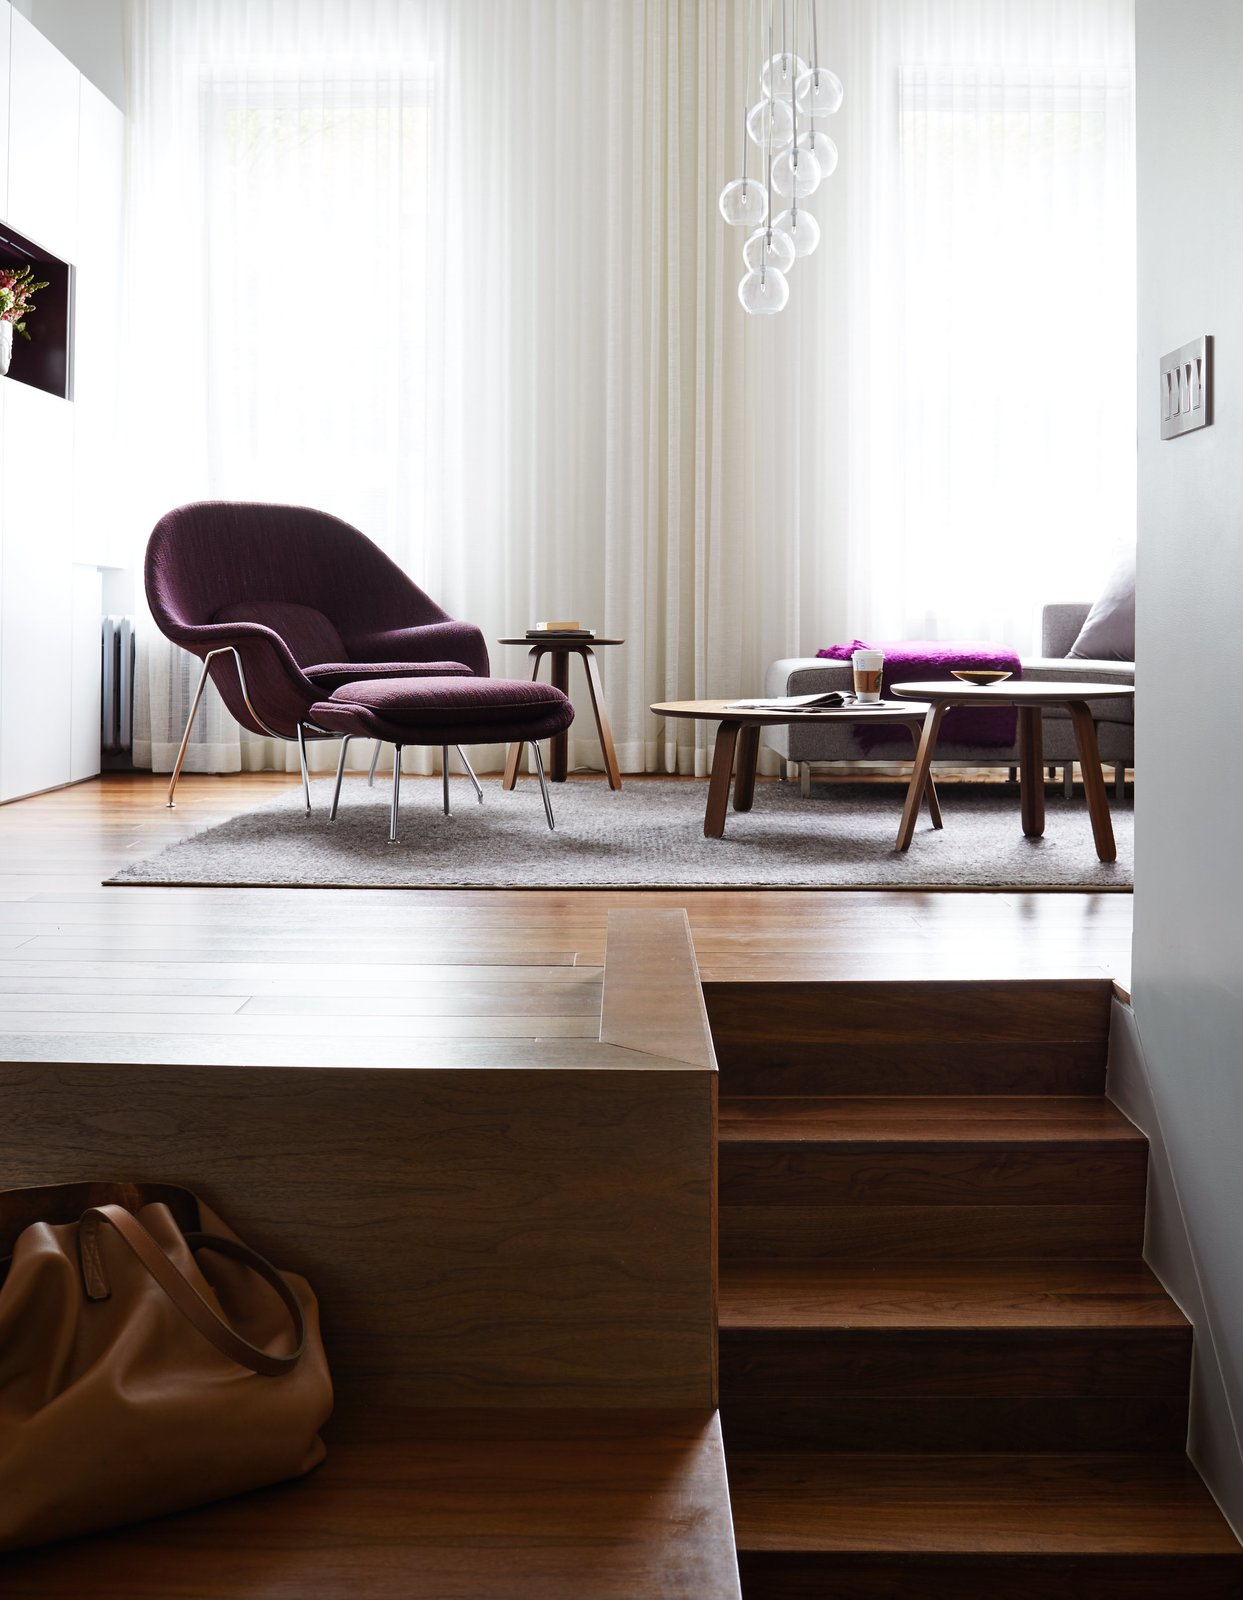 Living Room, Chair, Medium Hardwood Floor, Coffee Tables, Sectional, Pendant Lighting, End Tables, and Rug Floor The unusual layout of René Roupinian's Upper West Side home is what initially attracted her to the space, but the three-level plan proved difficult to organize. In his first solo project as STADT Architecture, Christopher Kitterman used a palette of walnut and white to unify the apartment, which he filled with space-saving solutions. Near the entrance, a Goliath table from Resource Furniture can expand to seat up to 10.  Photo 5 of 5 in Editor's Letter: Small Space, Big Design